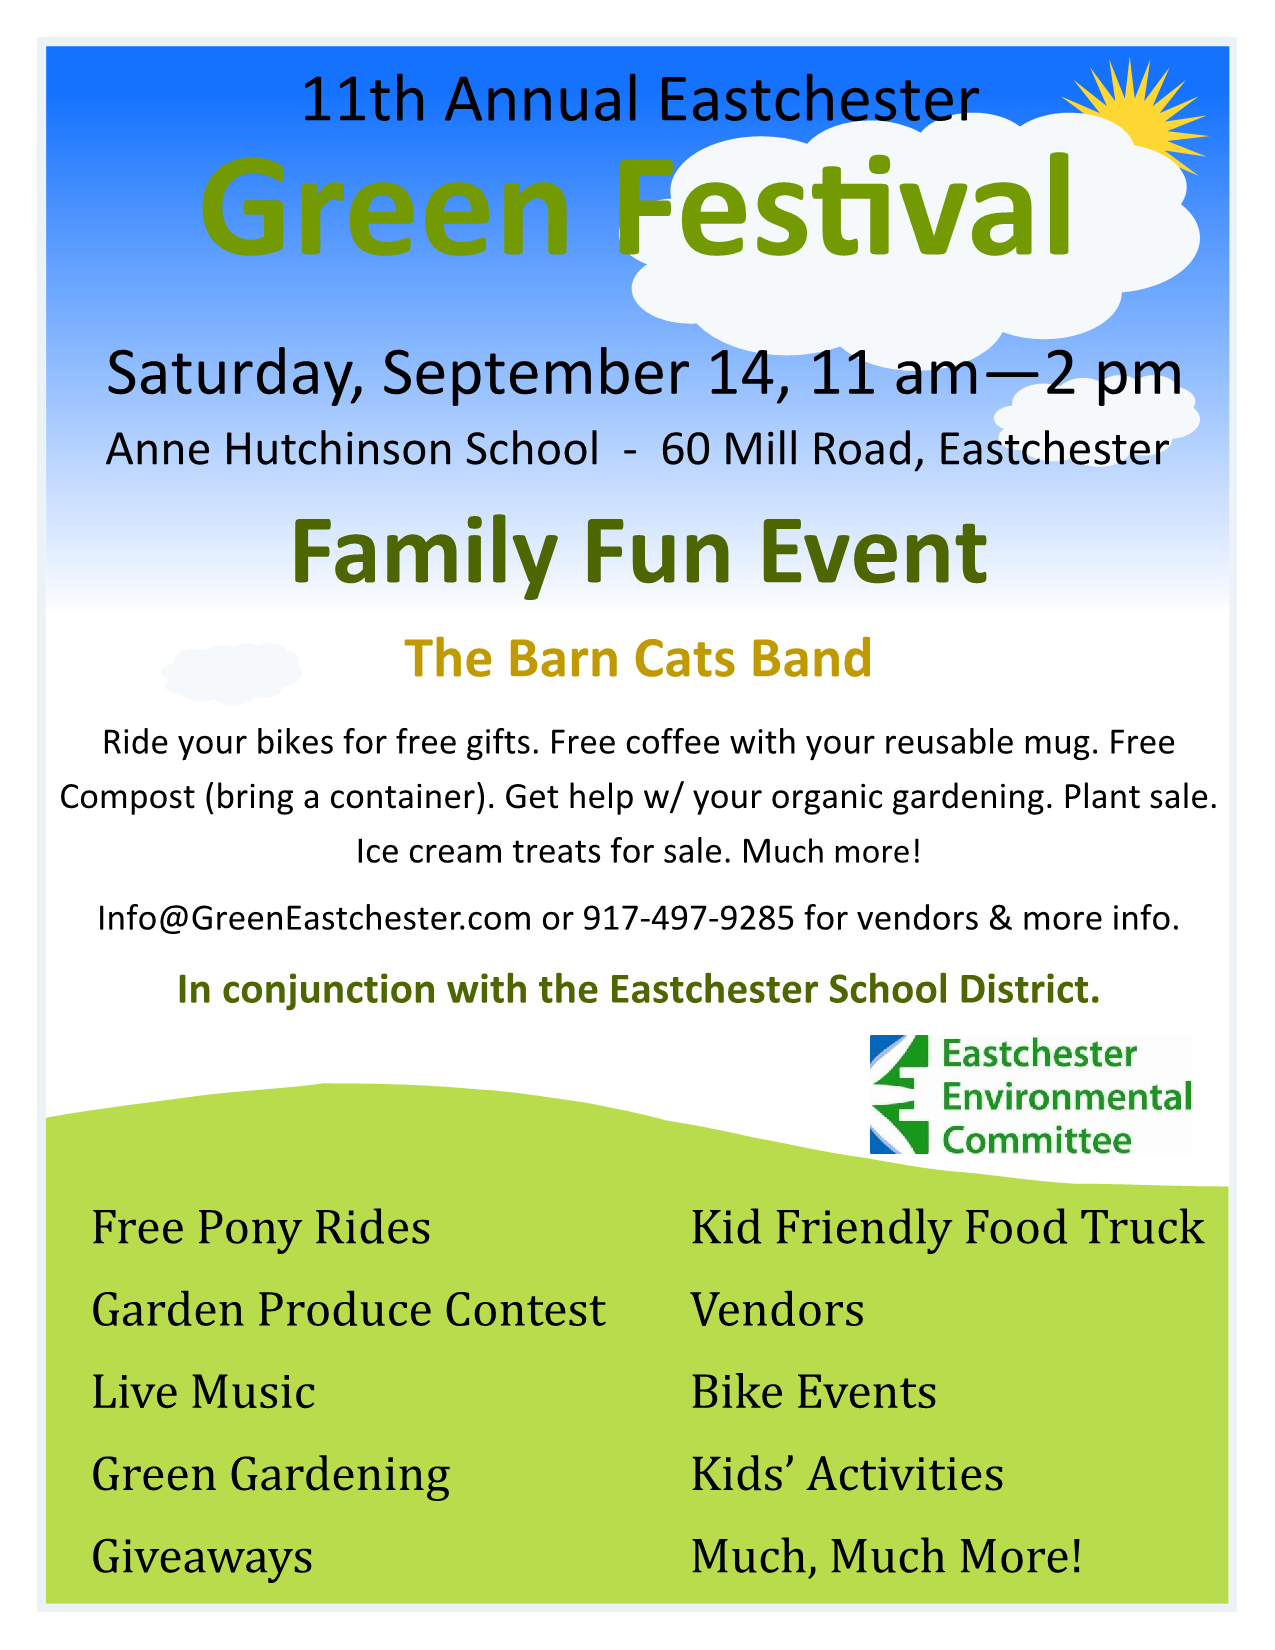 11th Annual Eastchester Green Festival1.png